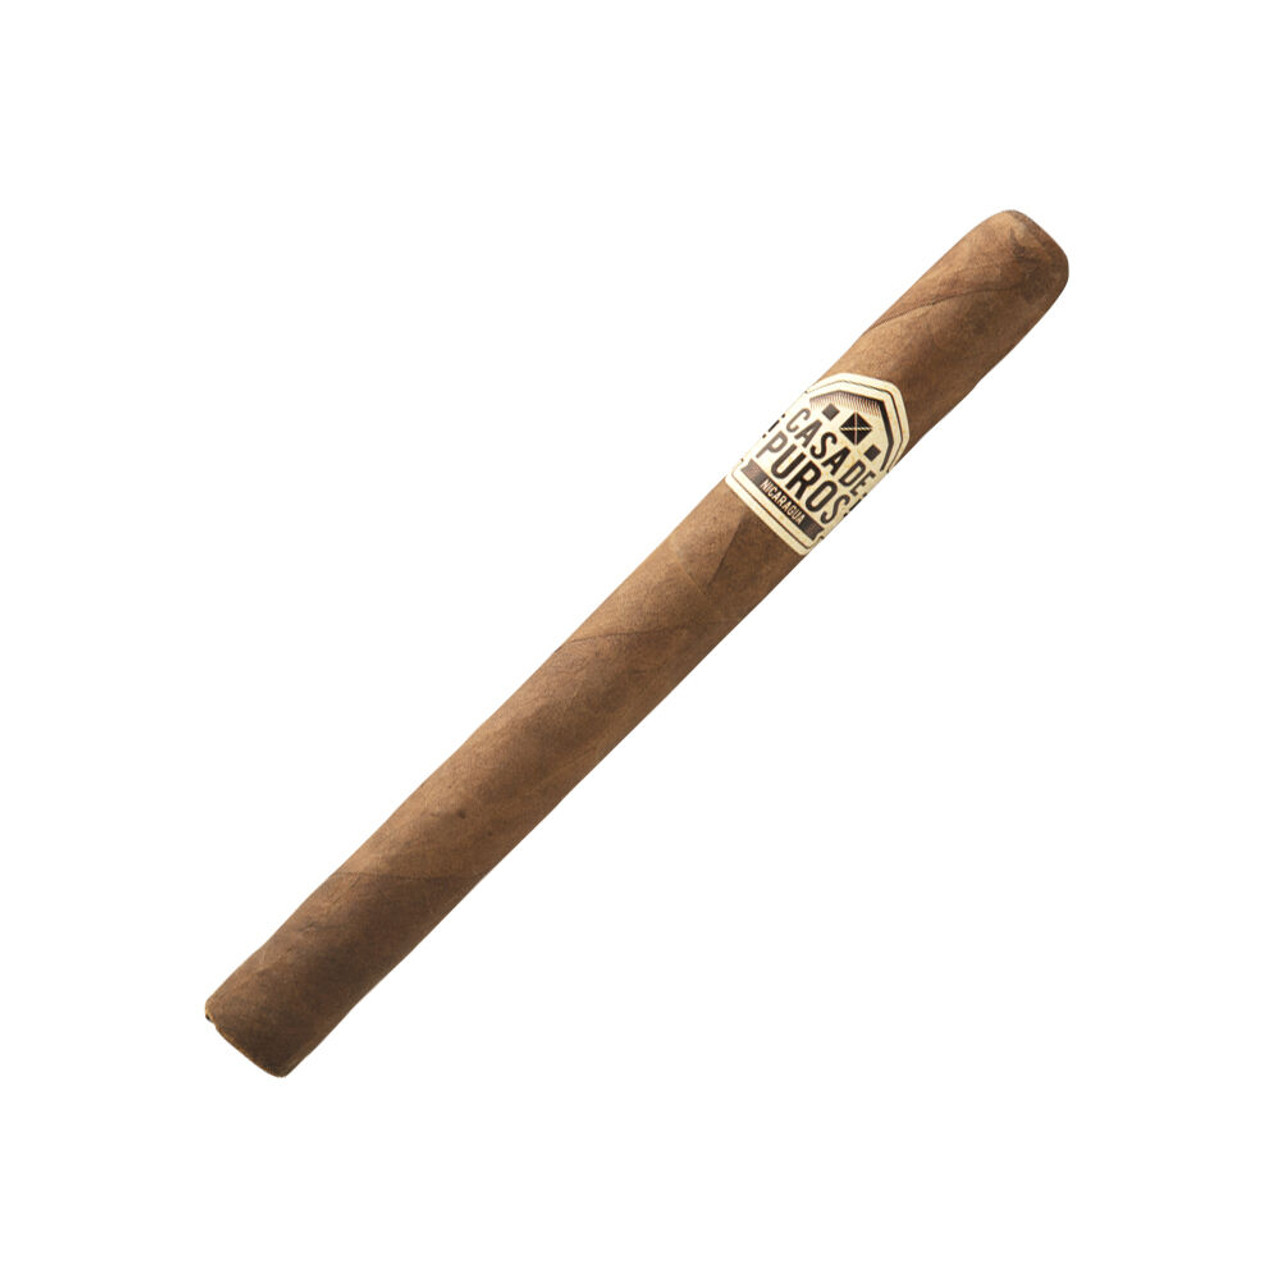 Casa de Puros Churchill Cigars - 7.62 x 50 (Bundle of 20)